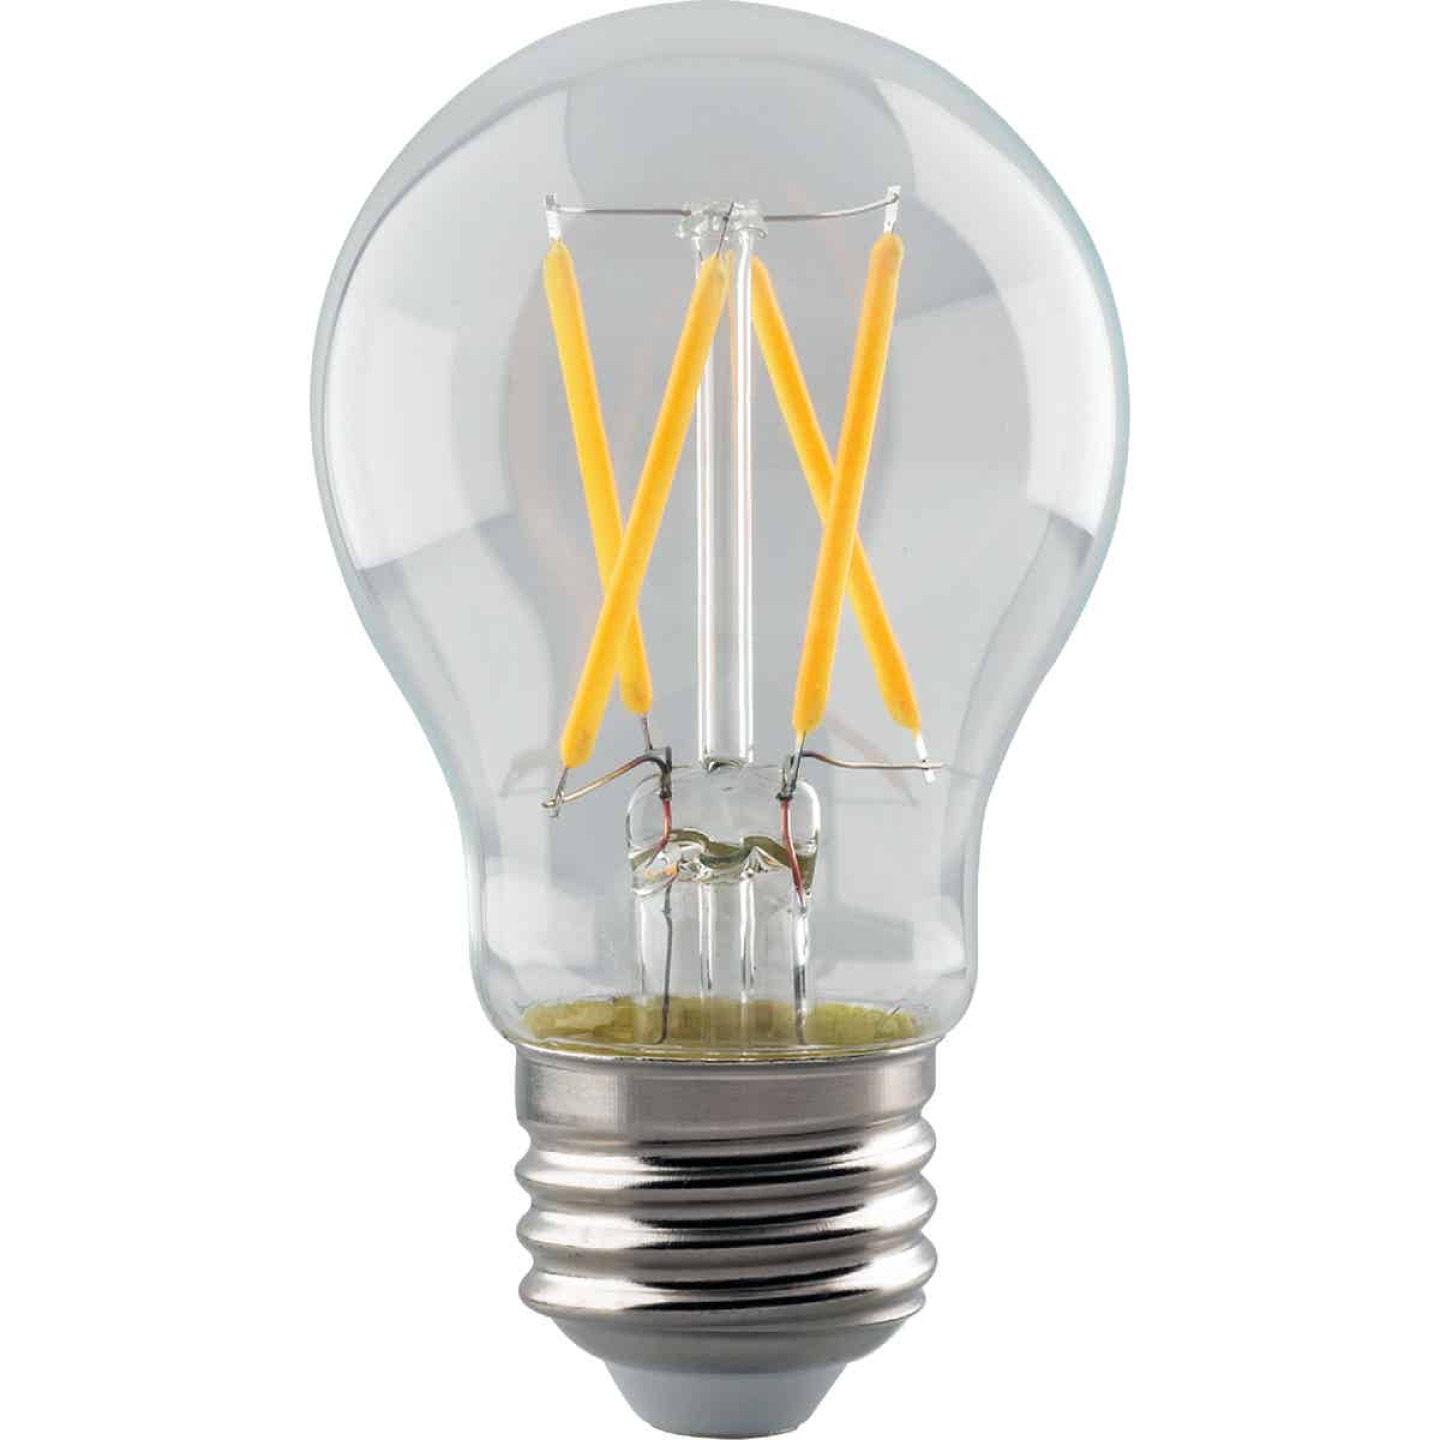 Satco 40W Equivalent Warm White A15 Medium Dimmable Traditional LED Light Bulb Image 1